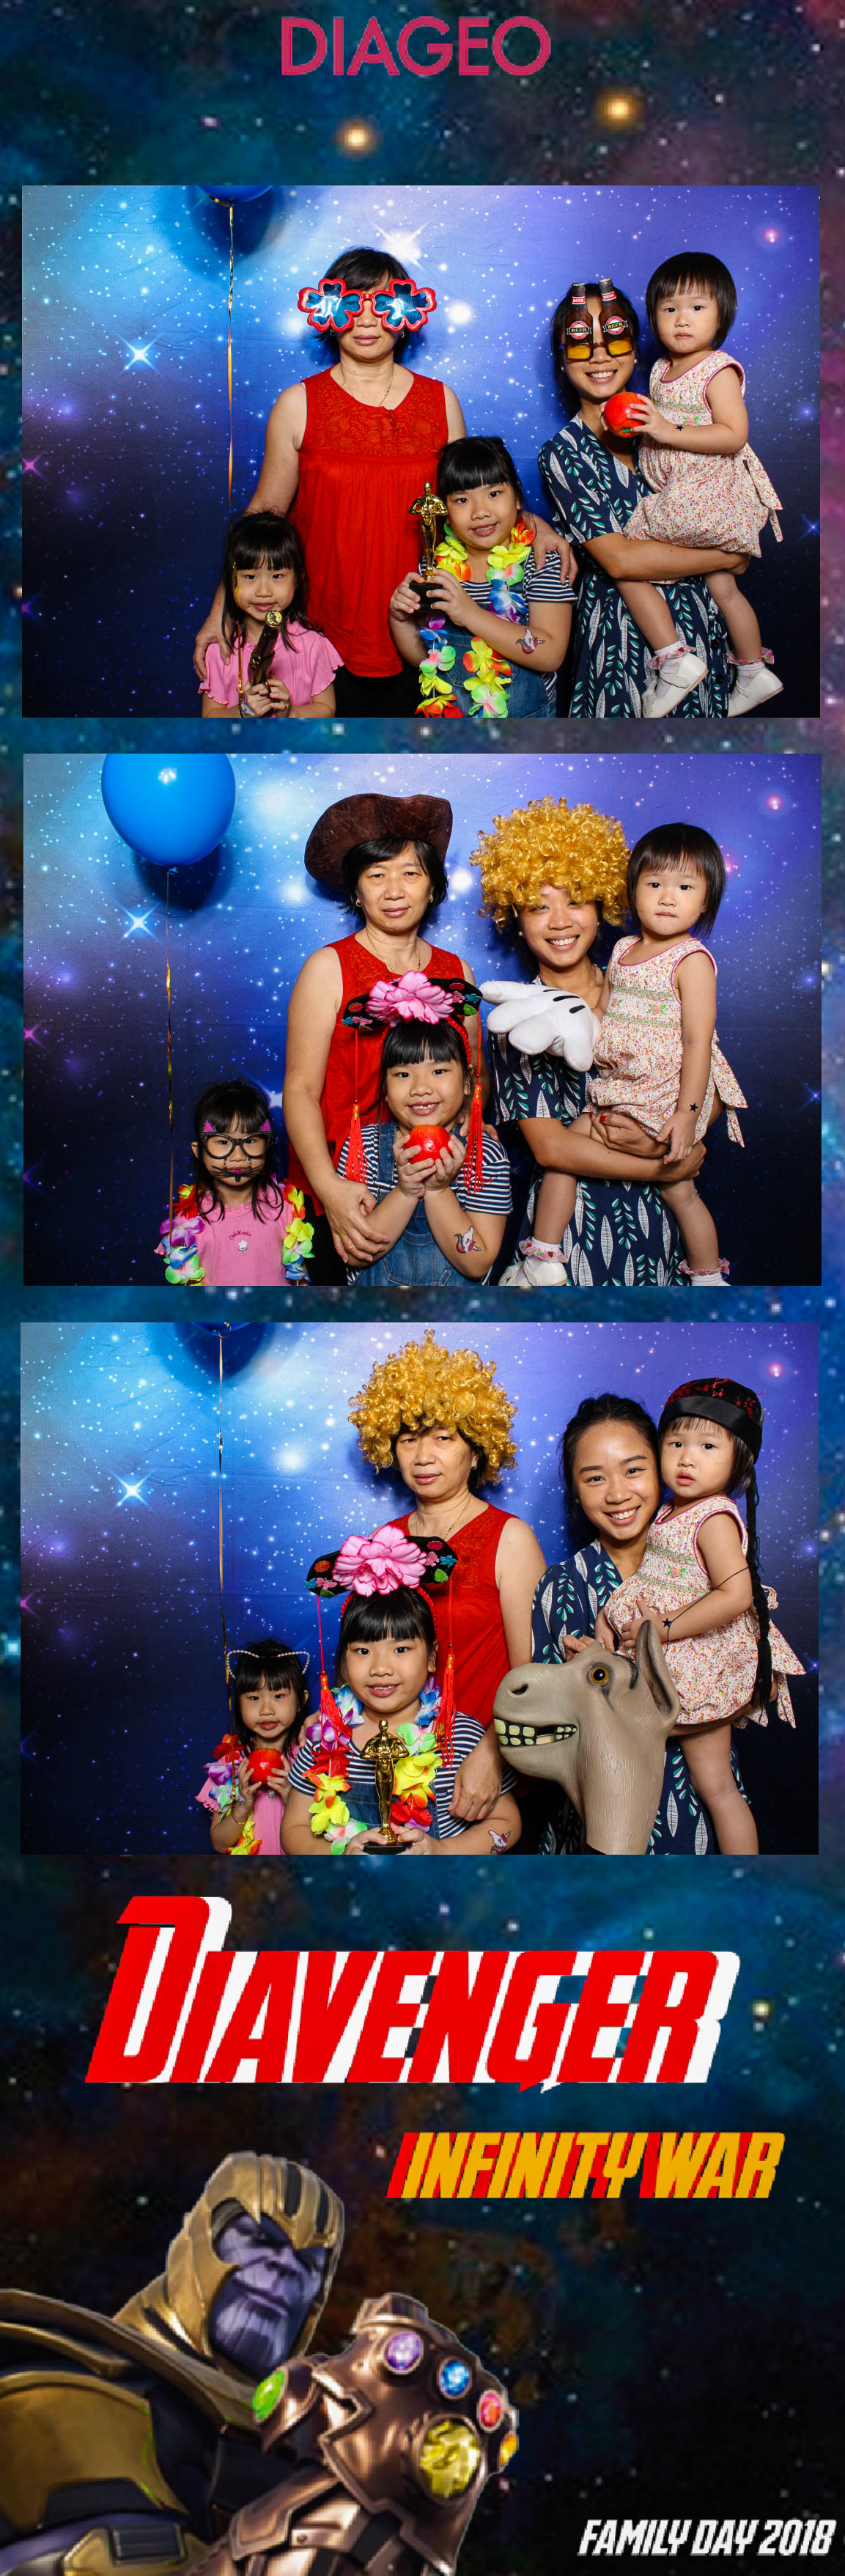 Photo booth 2306-23